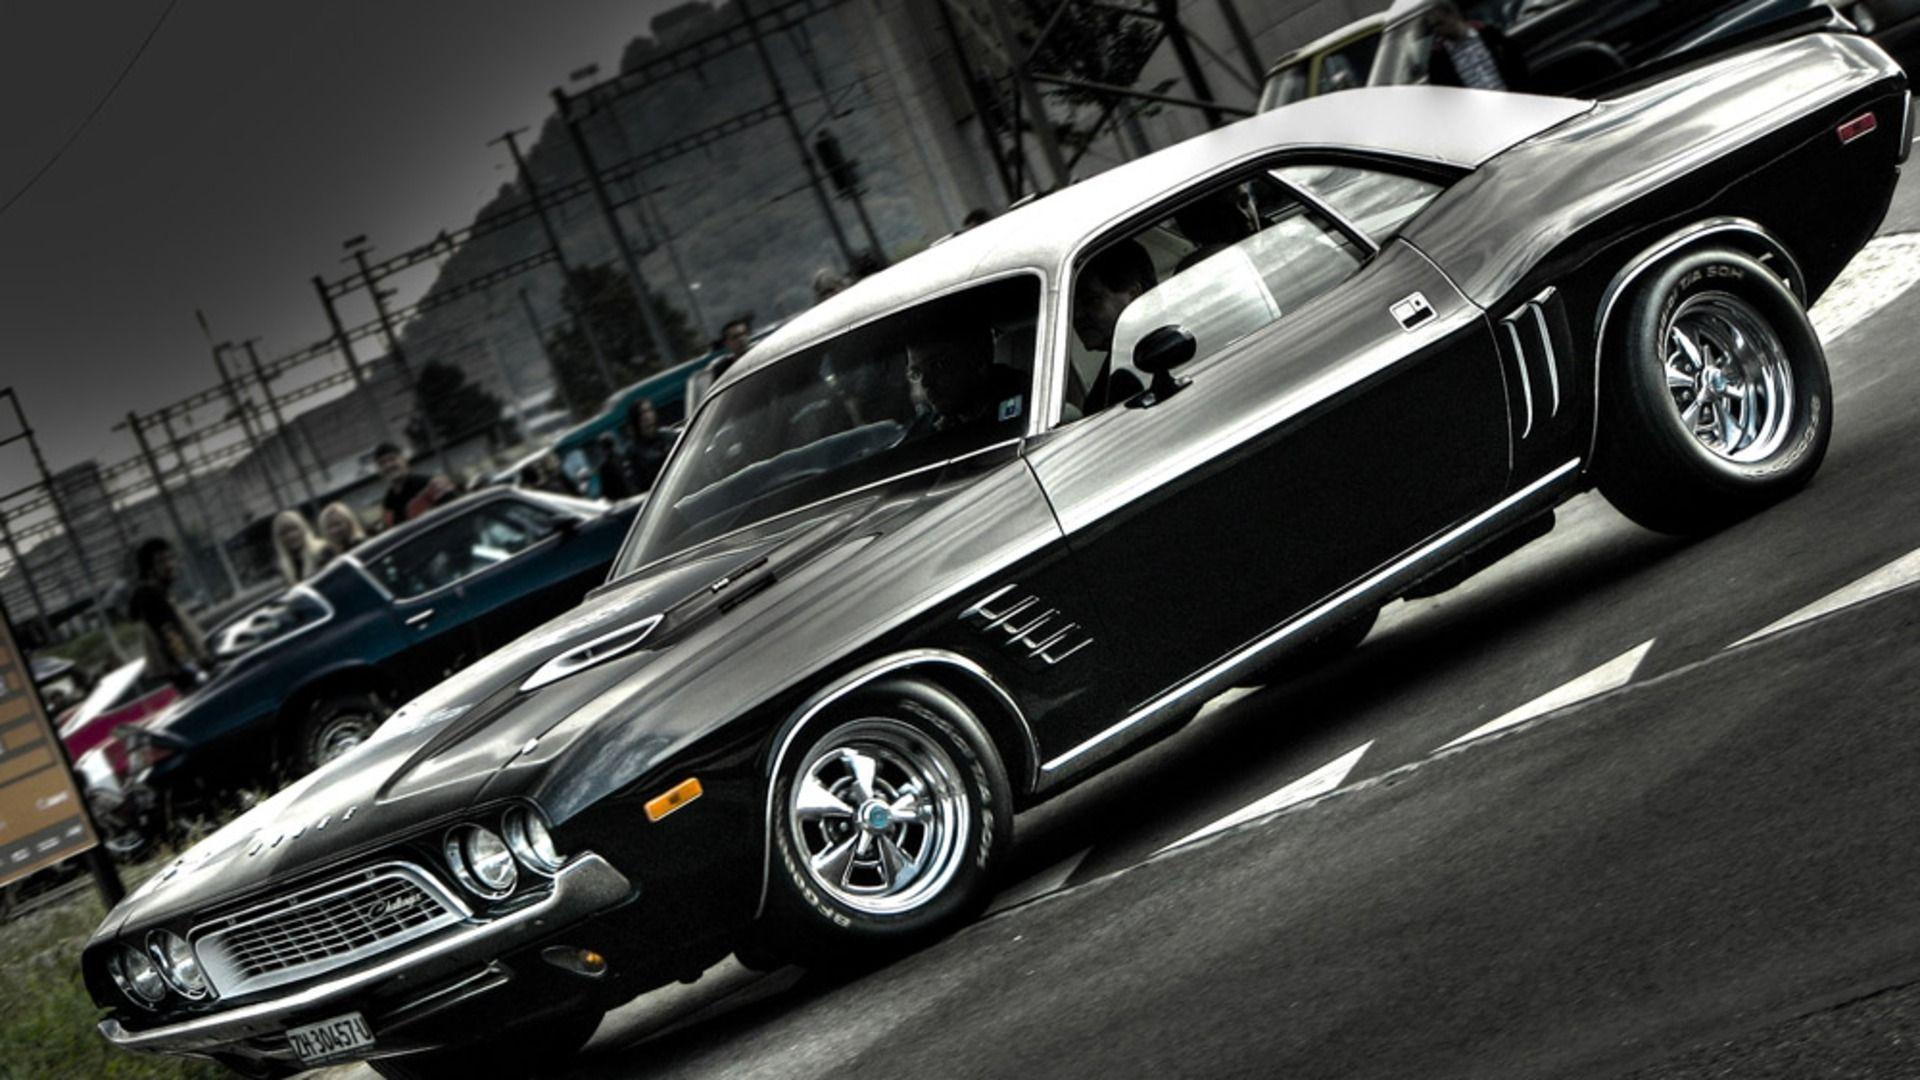 Classic muscle car wallpapers wallpaper cave for American classic cars